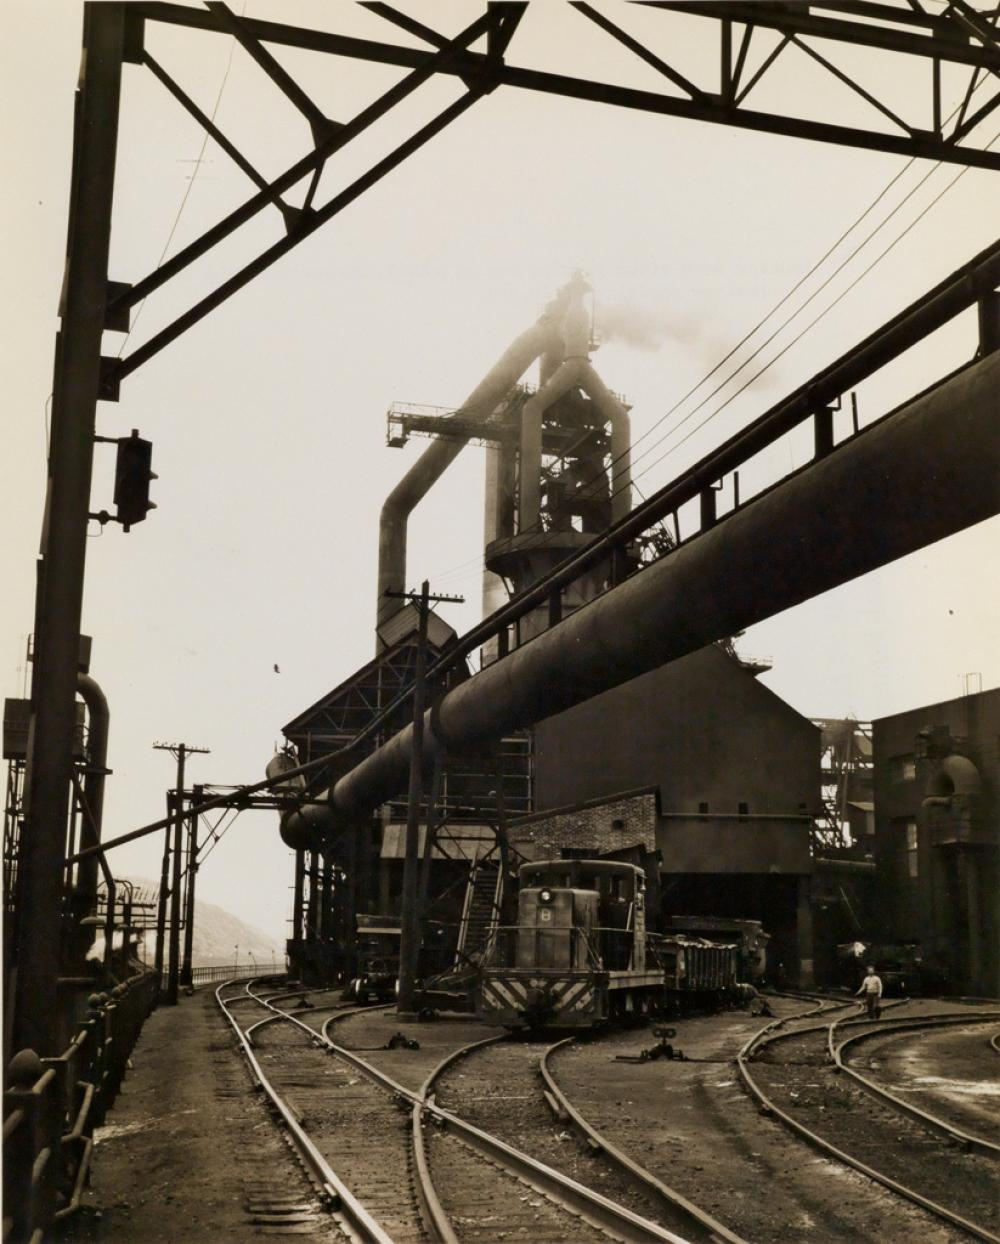 (PITTSBURGH STEEL CO.) An archive of approximately 133 photographs relating to the Pittsburgh Steel Company.